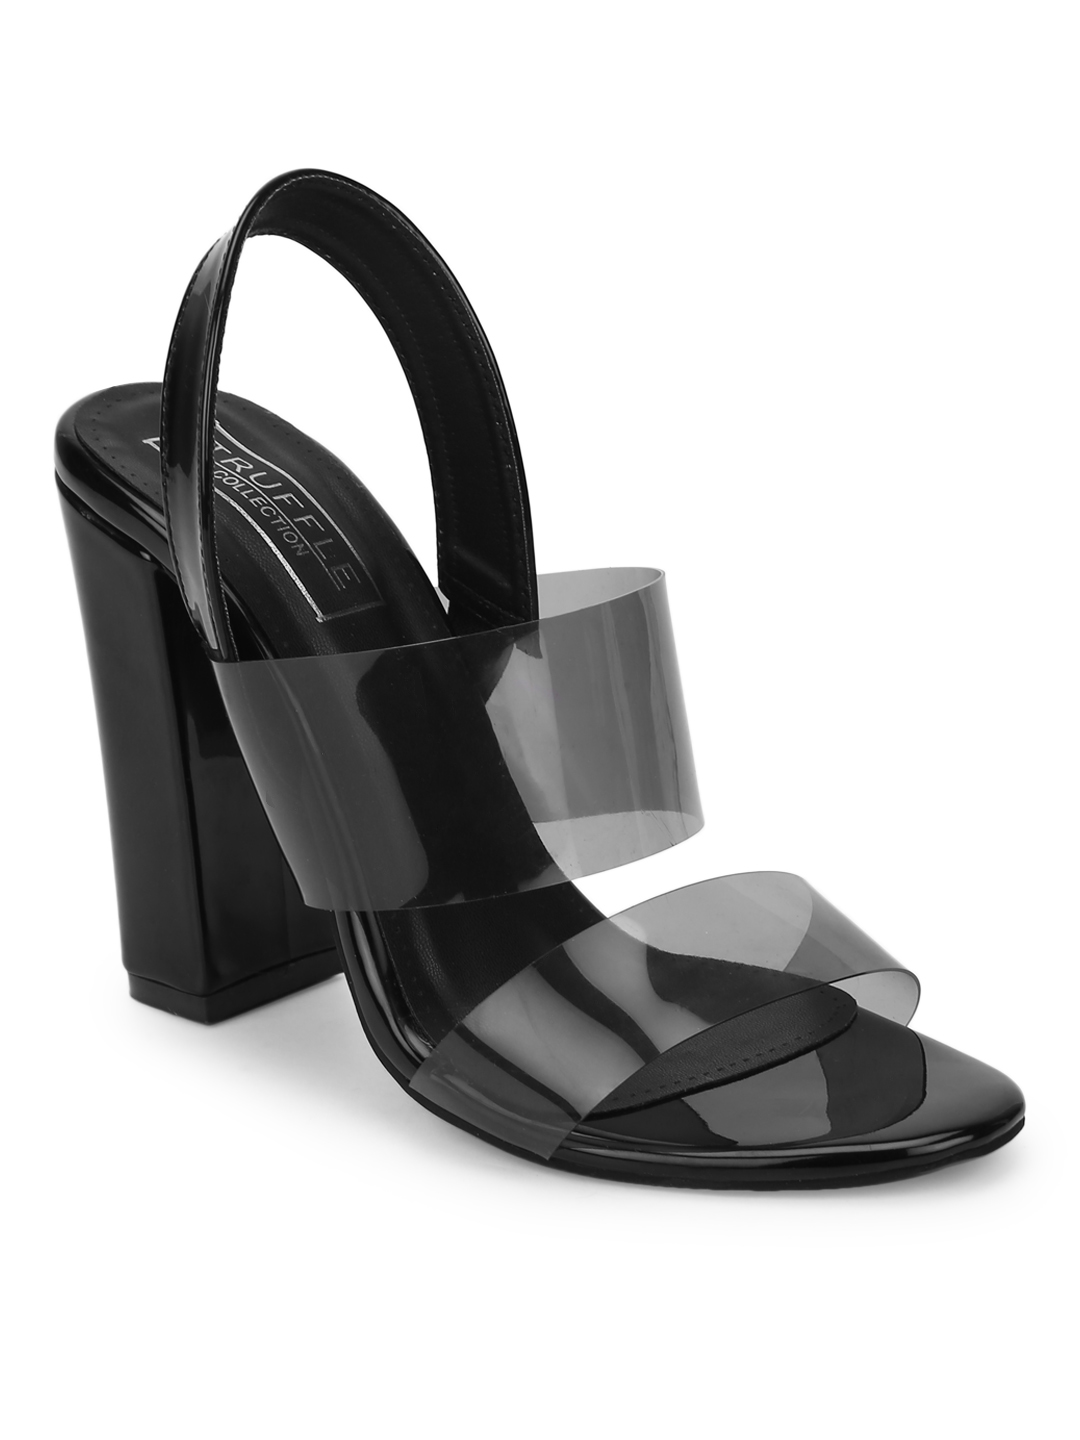 Truffle Collection | Black Perspex Patent Sandals With Back Strap